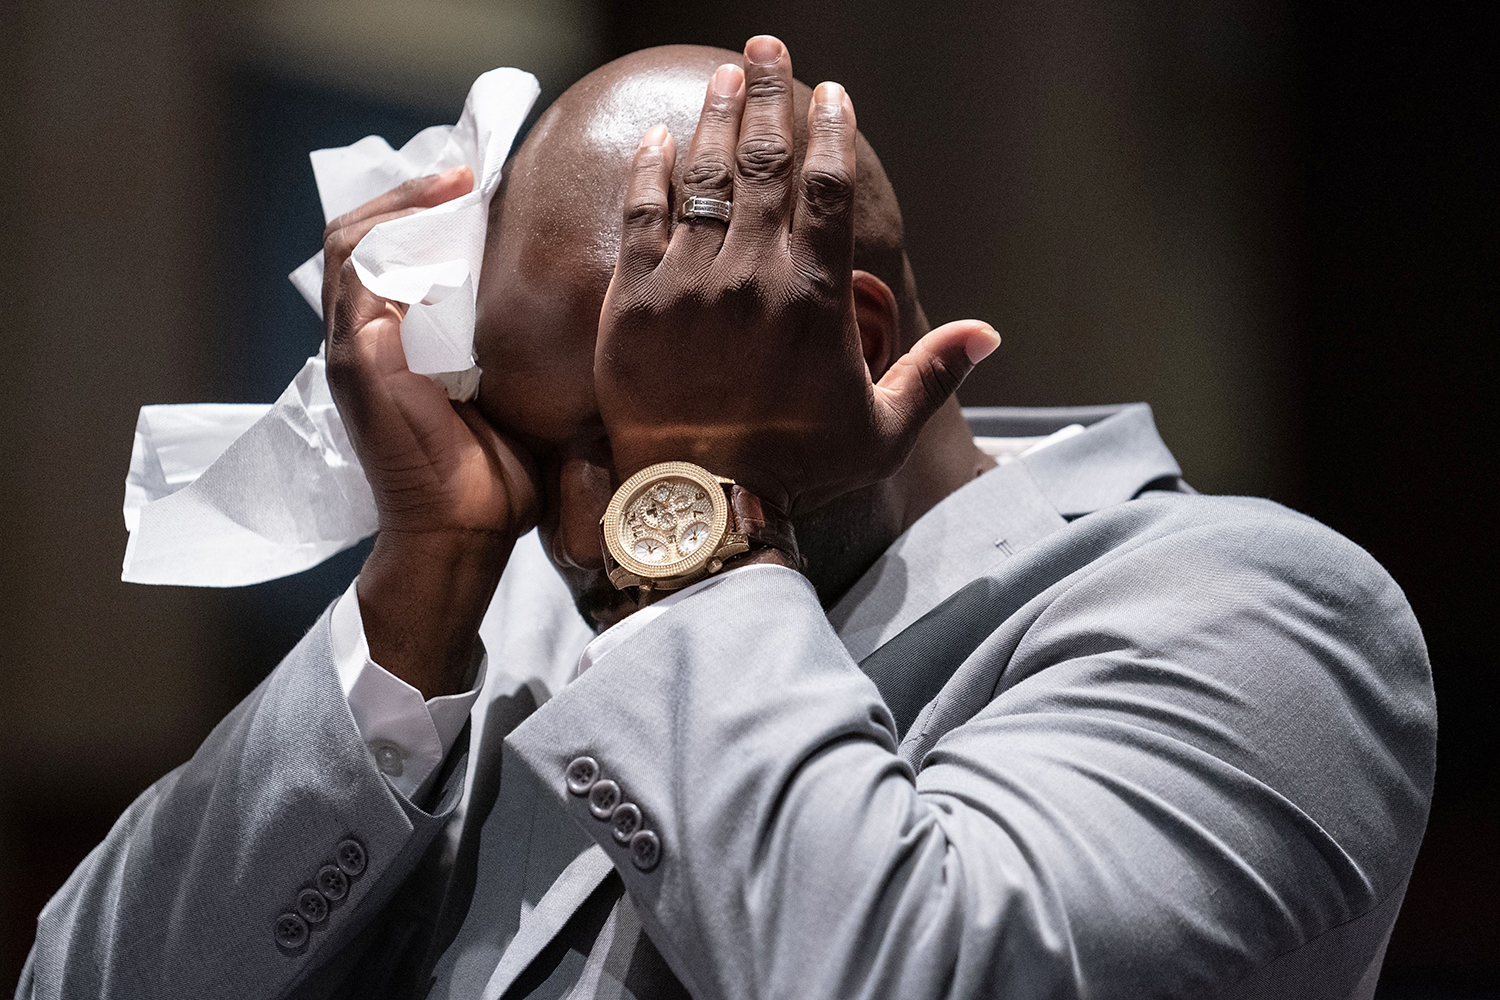 Philonise Floyd, the brother of George Floyd, who was killed last month by police, wipes away tears as he testifies before the House Judiciary Committee in Washington, D.C., on June 10 about policing practices and law enforcement accountability. ERIN SCHAFF/POOL/AFP via Getty Images